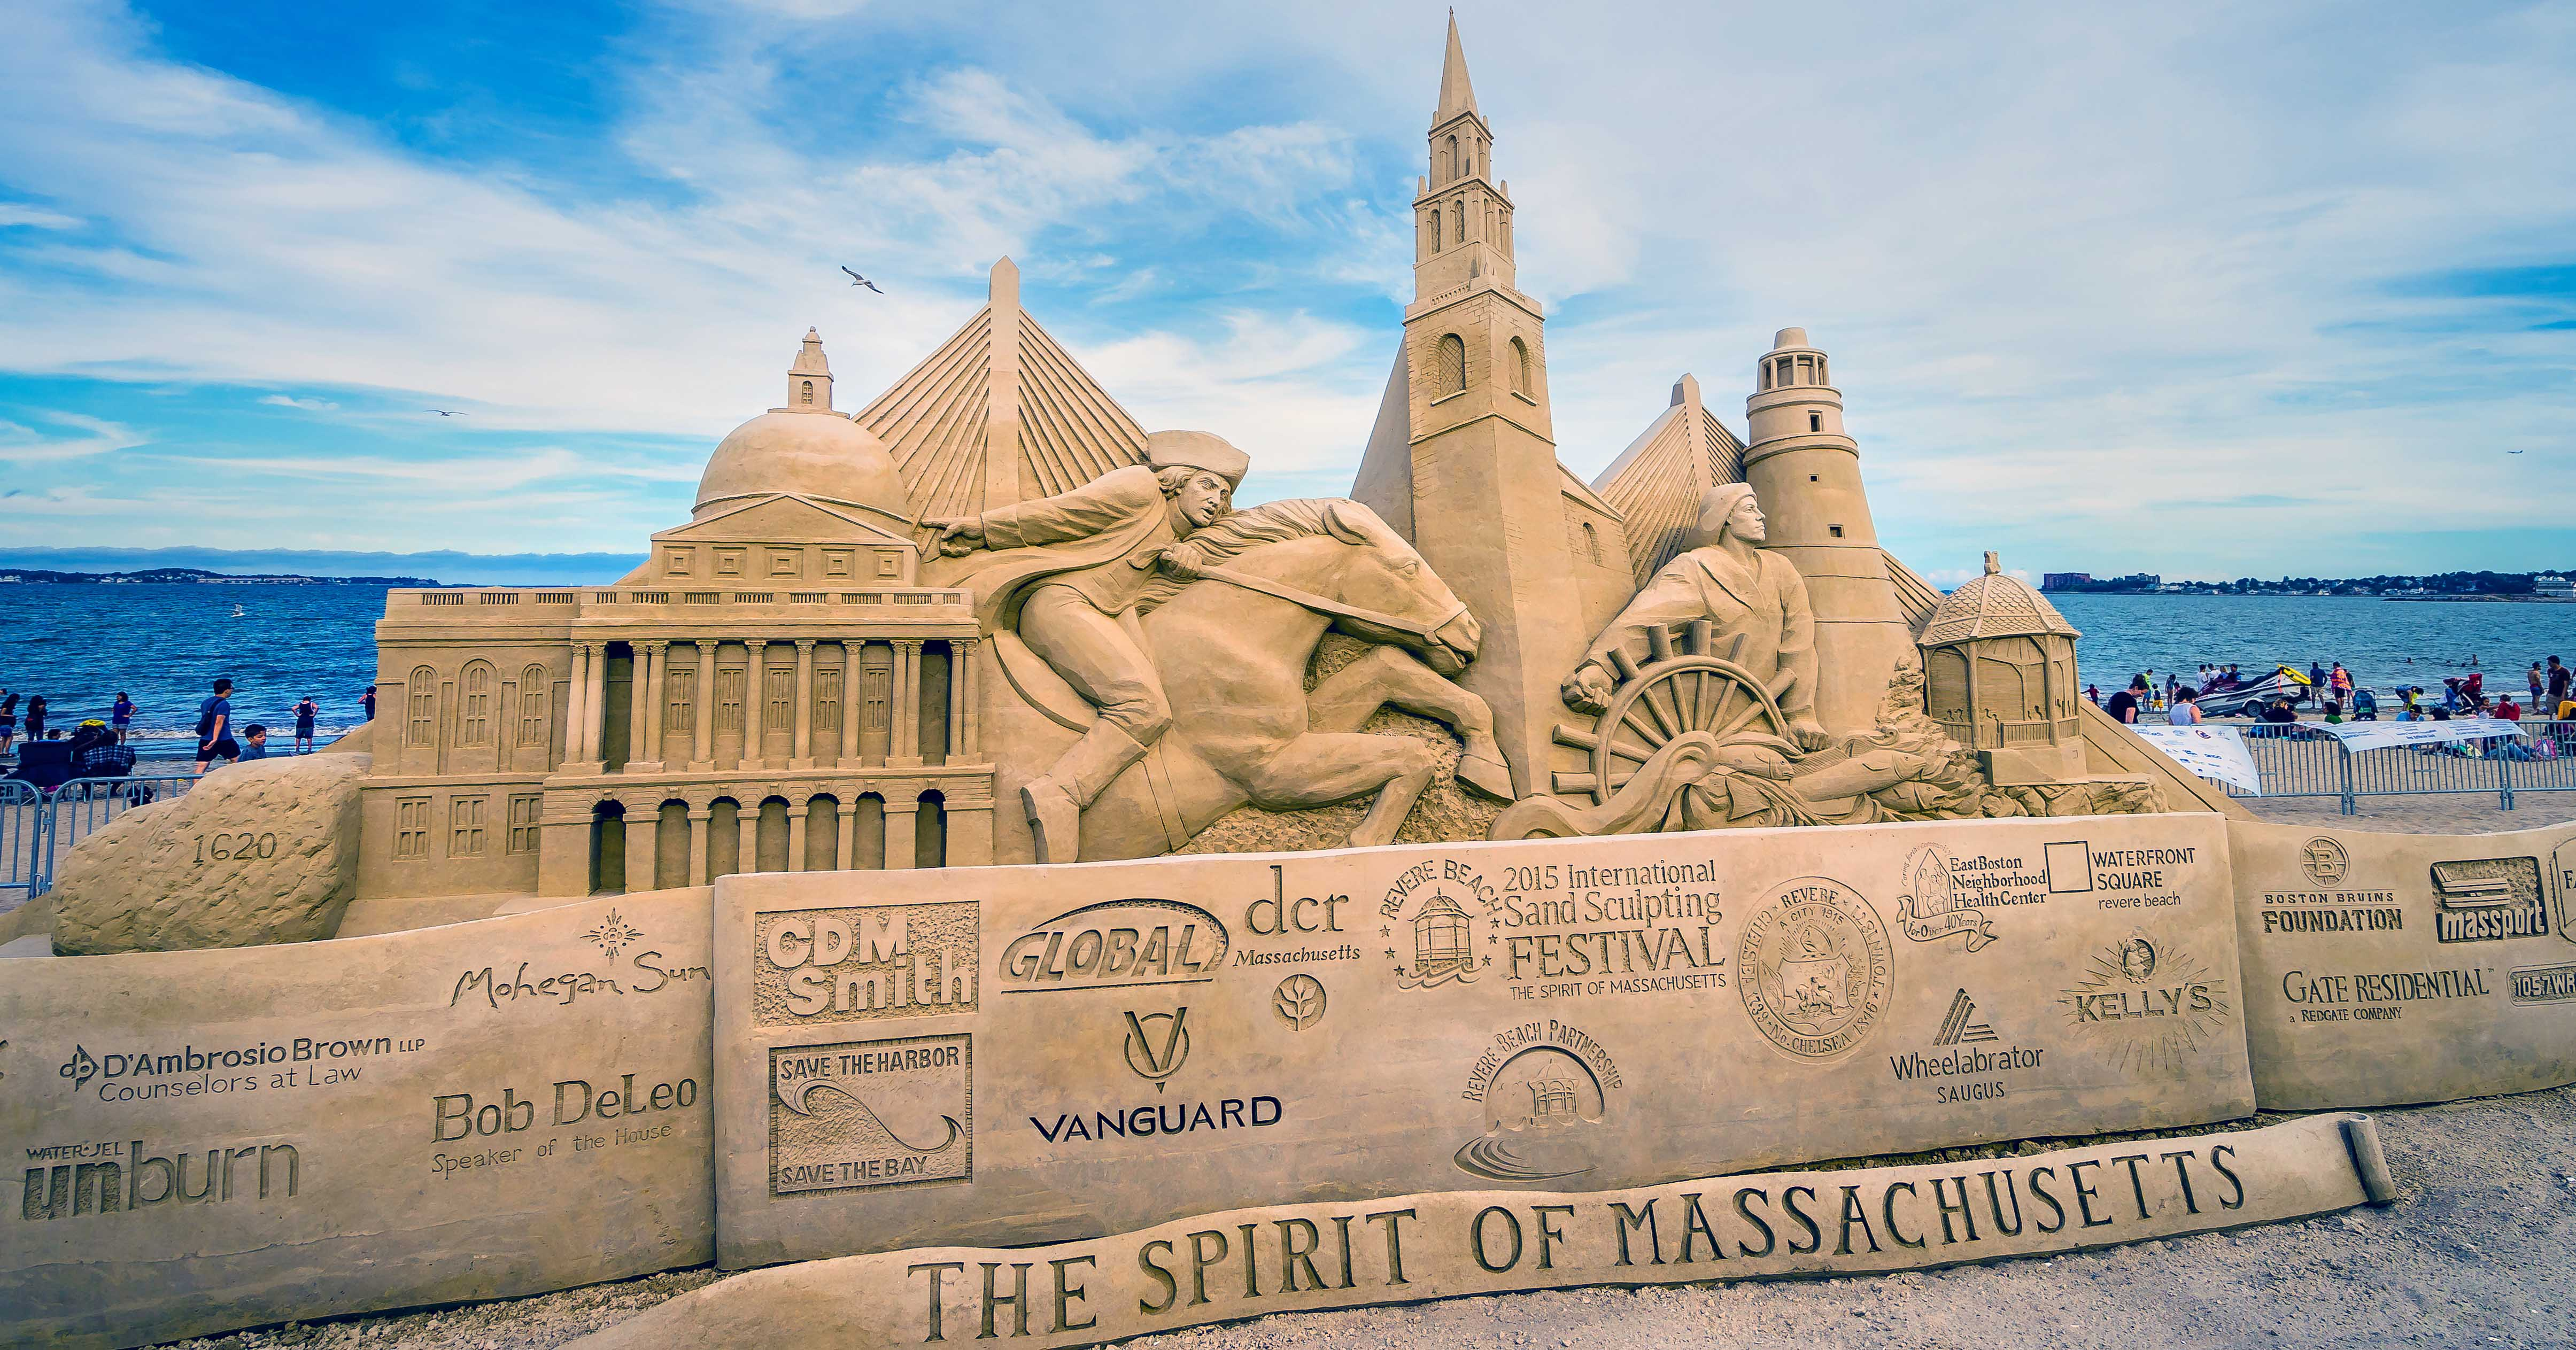 2019 International Sand Sculpting Festival [07/26/19]